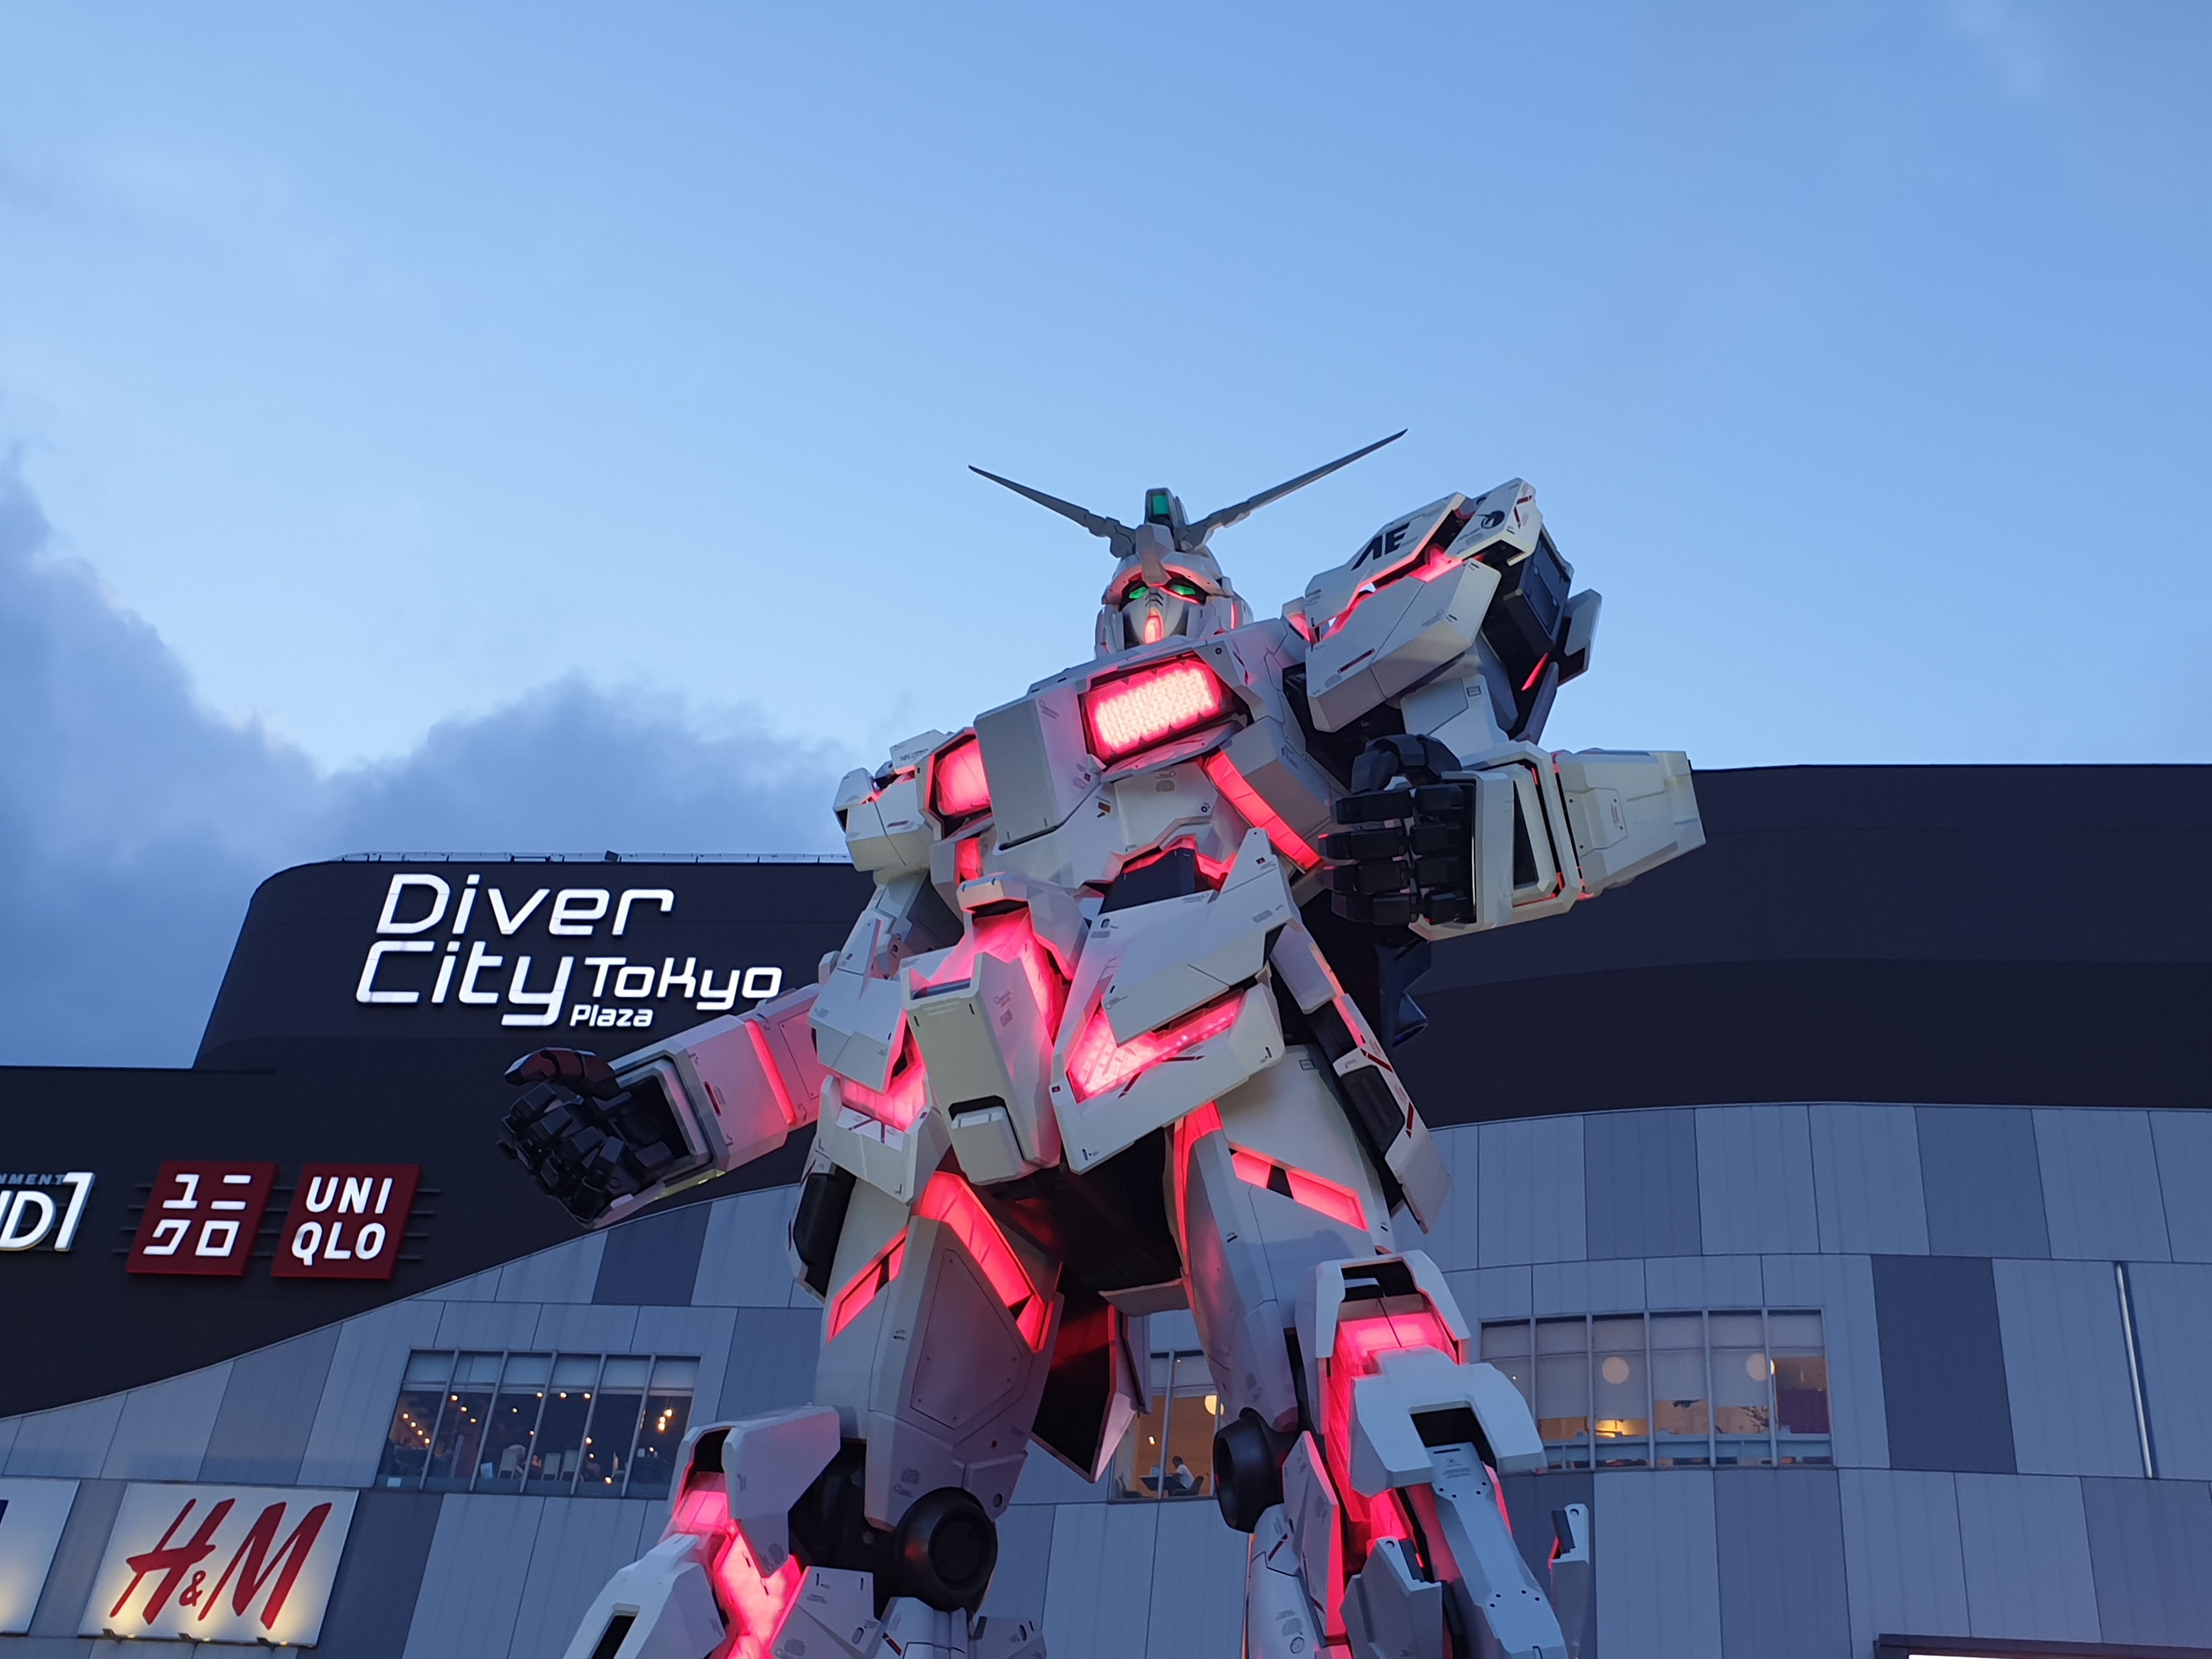 Geek It! Otaku Out and About: Gundam Adventure in DiverCity Odaiba